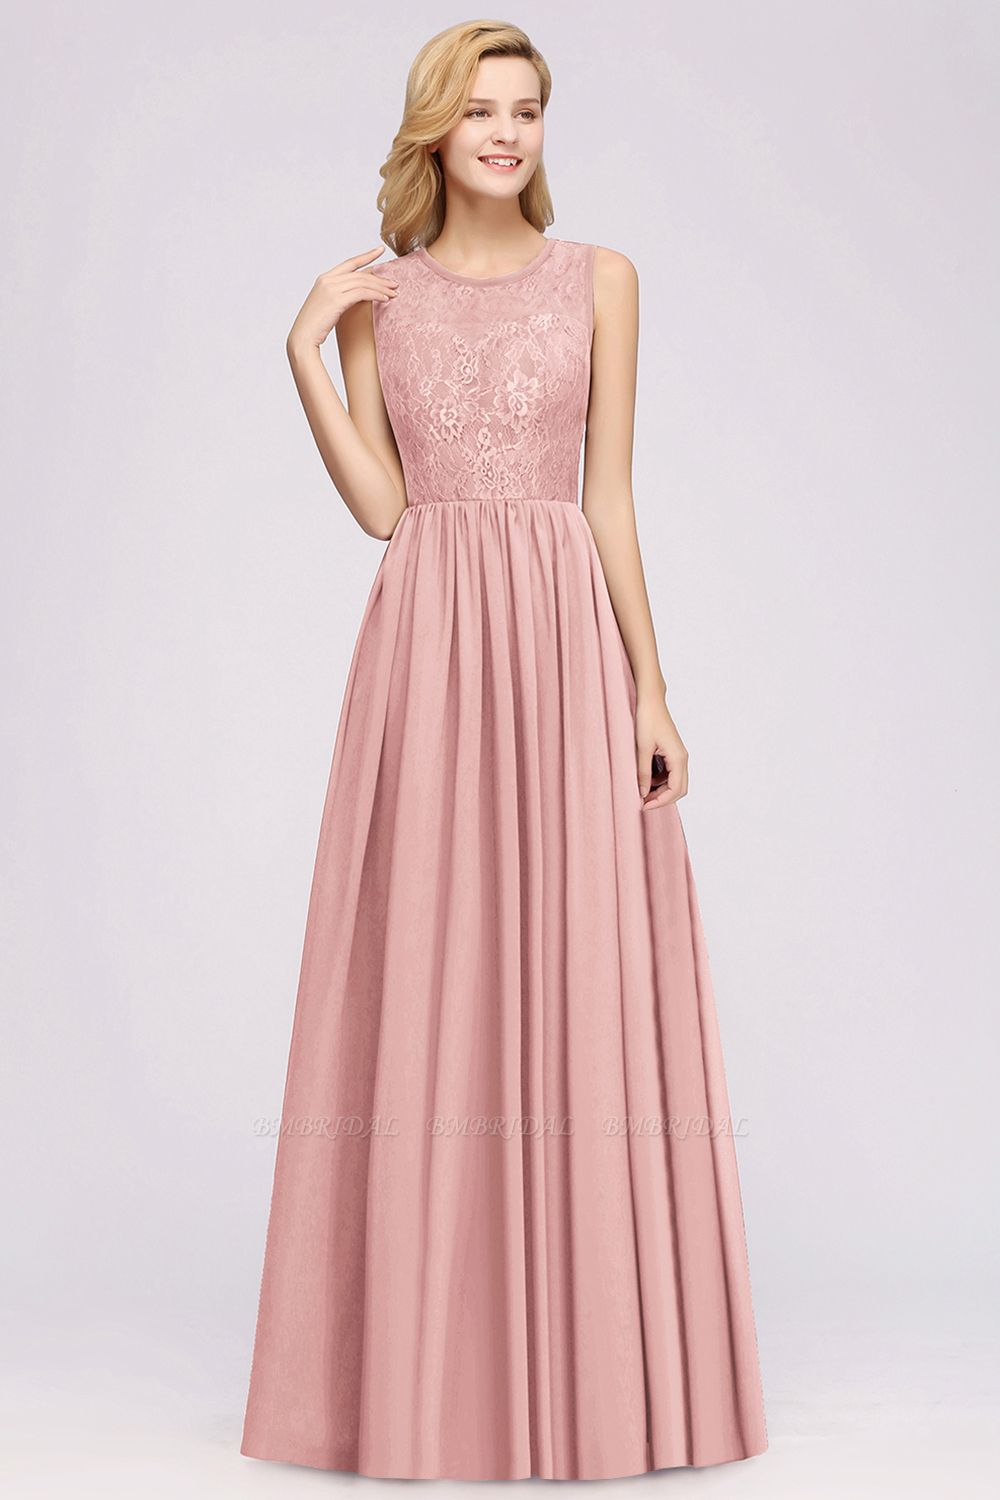 Affordable Sleeveless Lace Pink Bridesmaid Dress With Hollowout Back